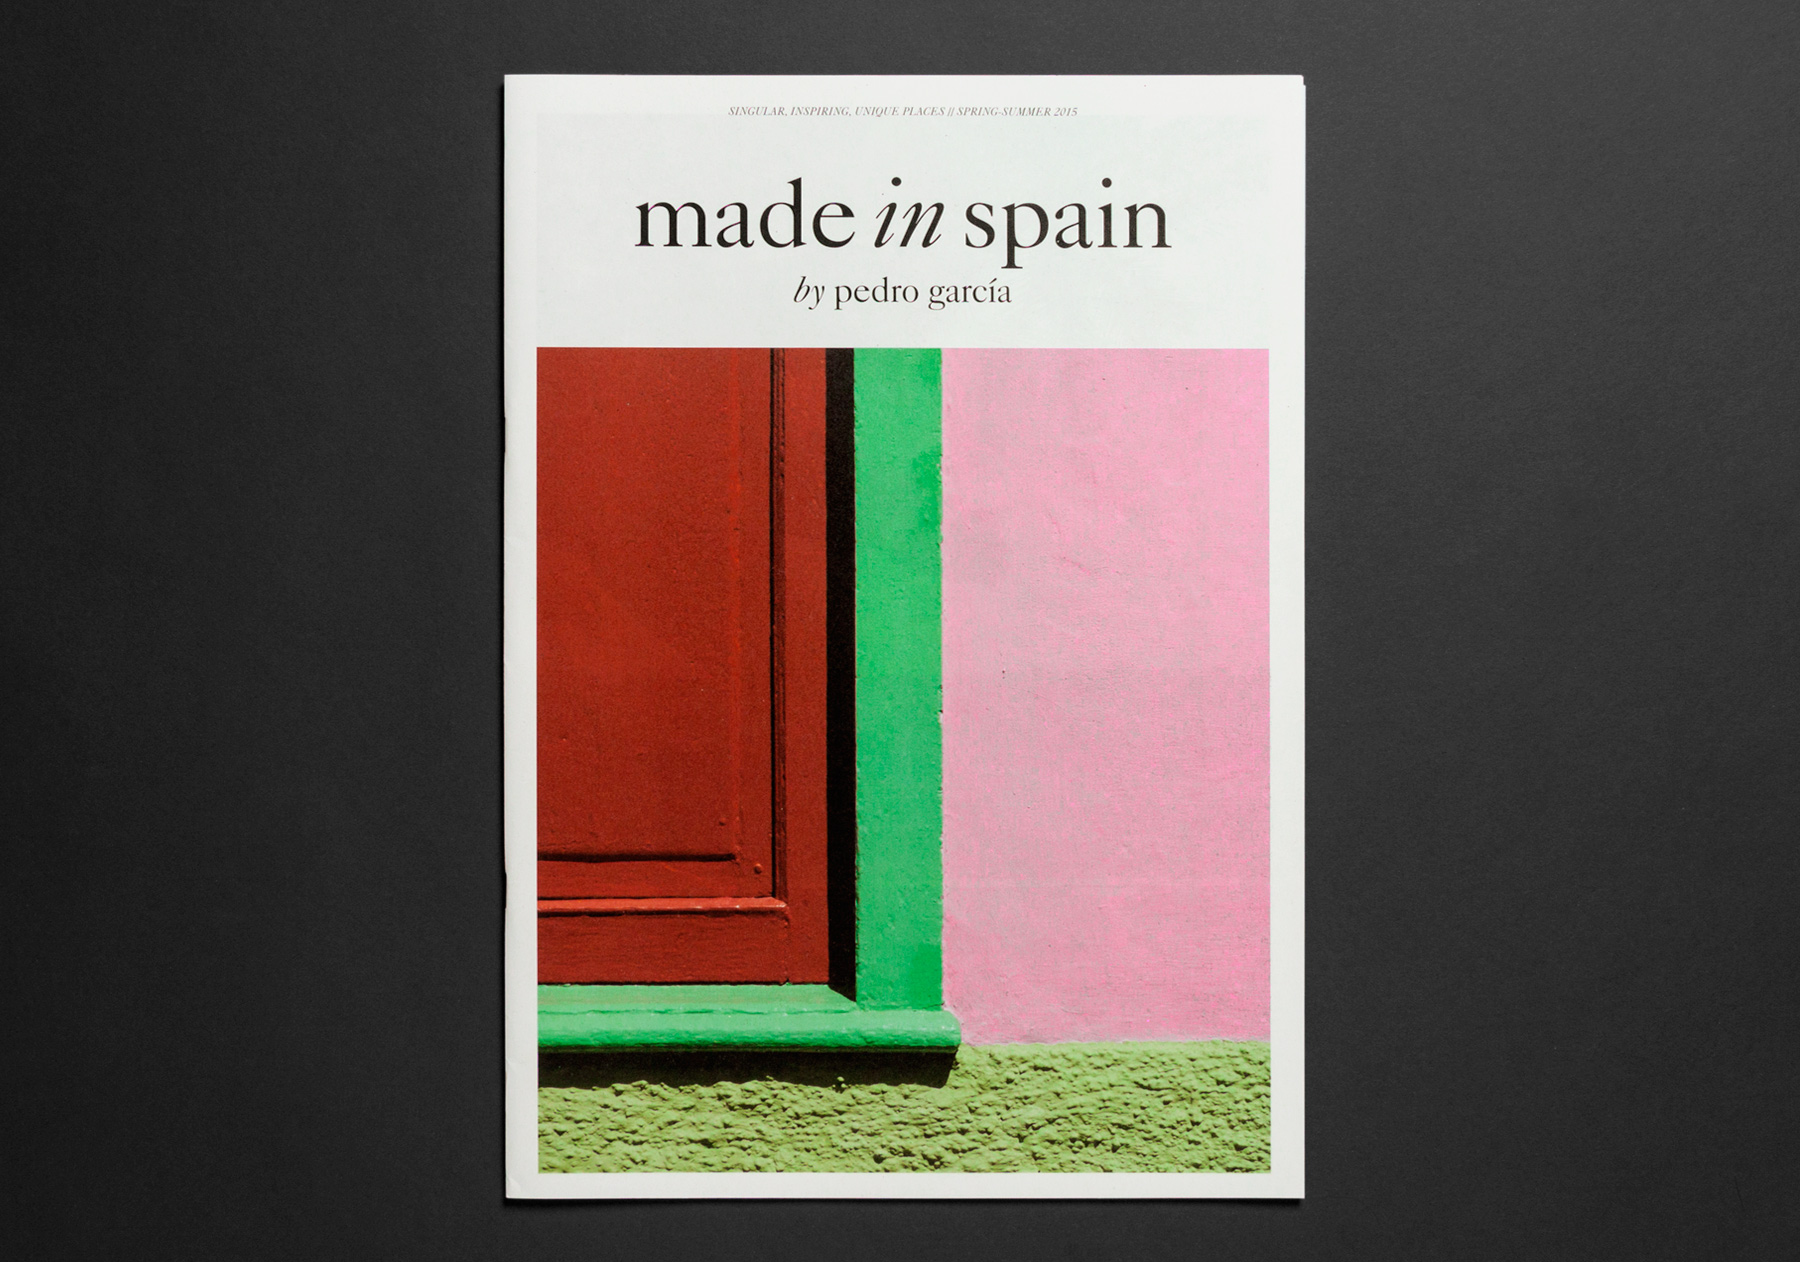 clase bcn content art direction editorial design made in spain pedro garcia – Clase bcn